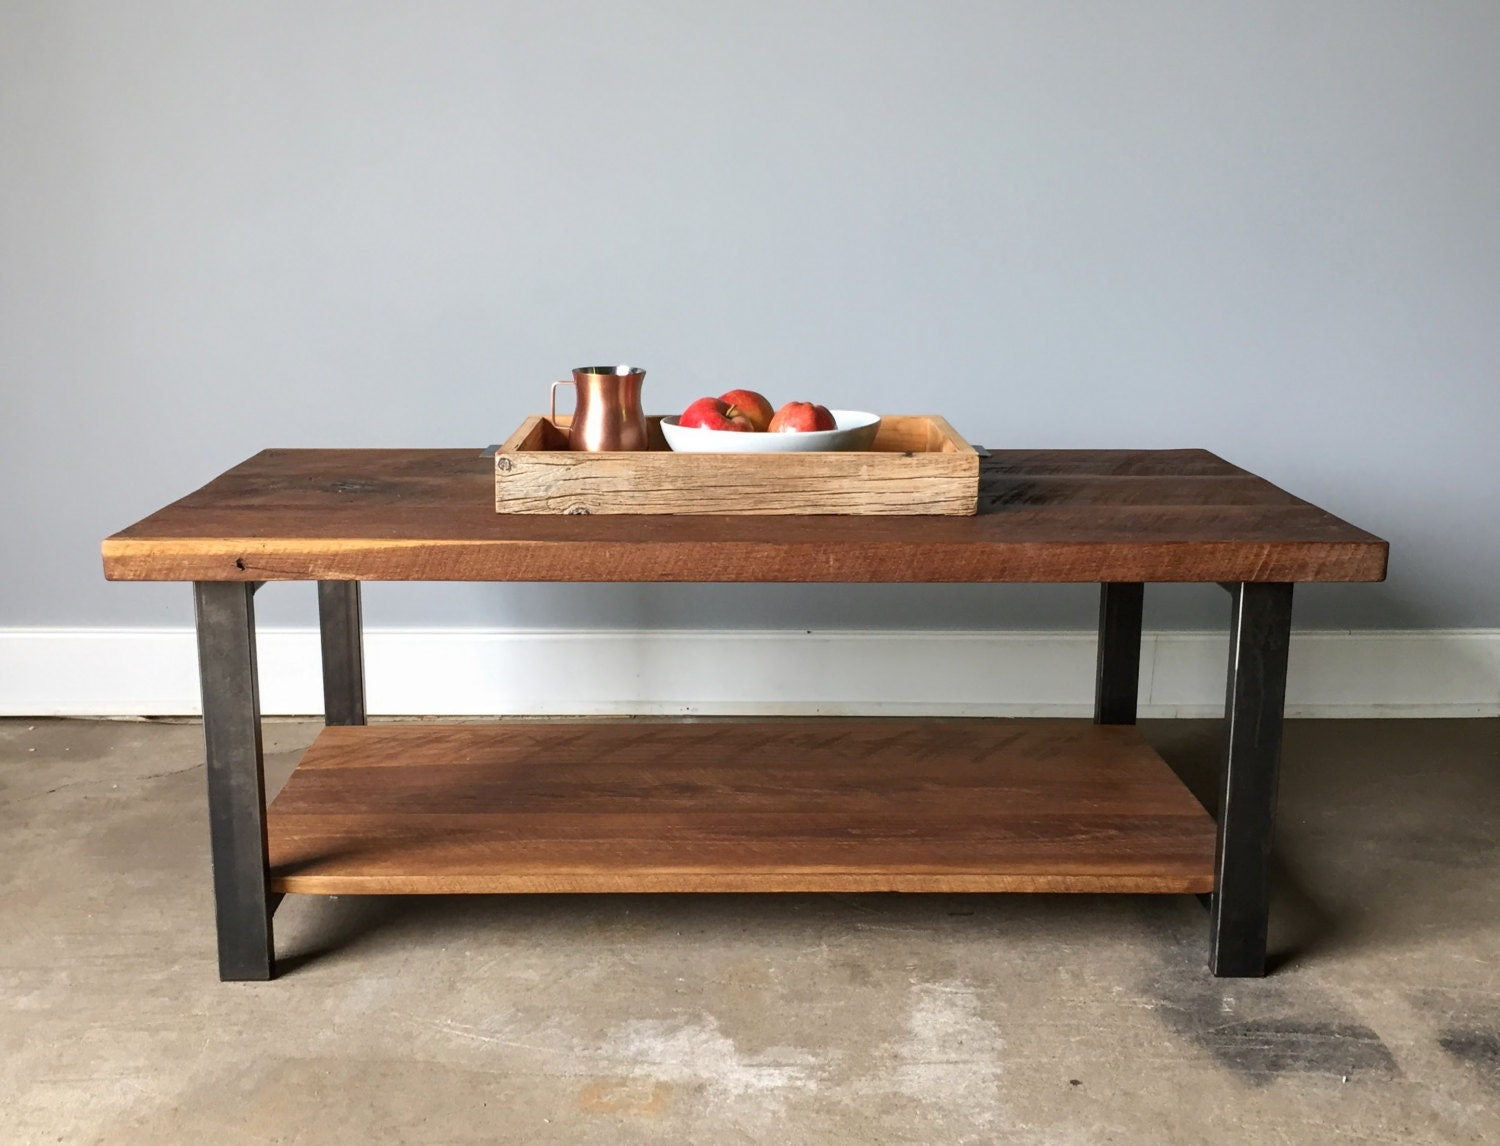 Reclaimed Oak Wood Coffee Table Lower Shelf Metal Legs